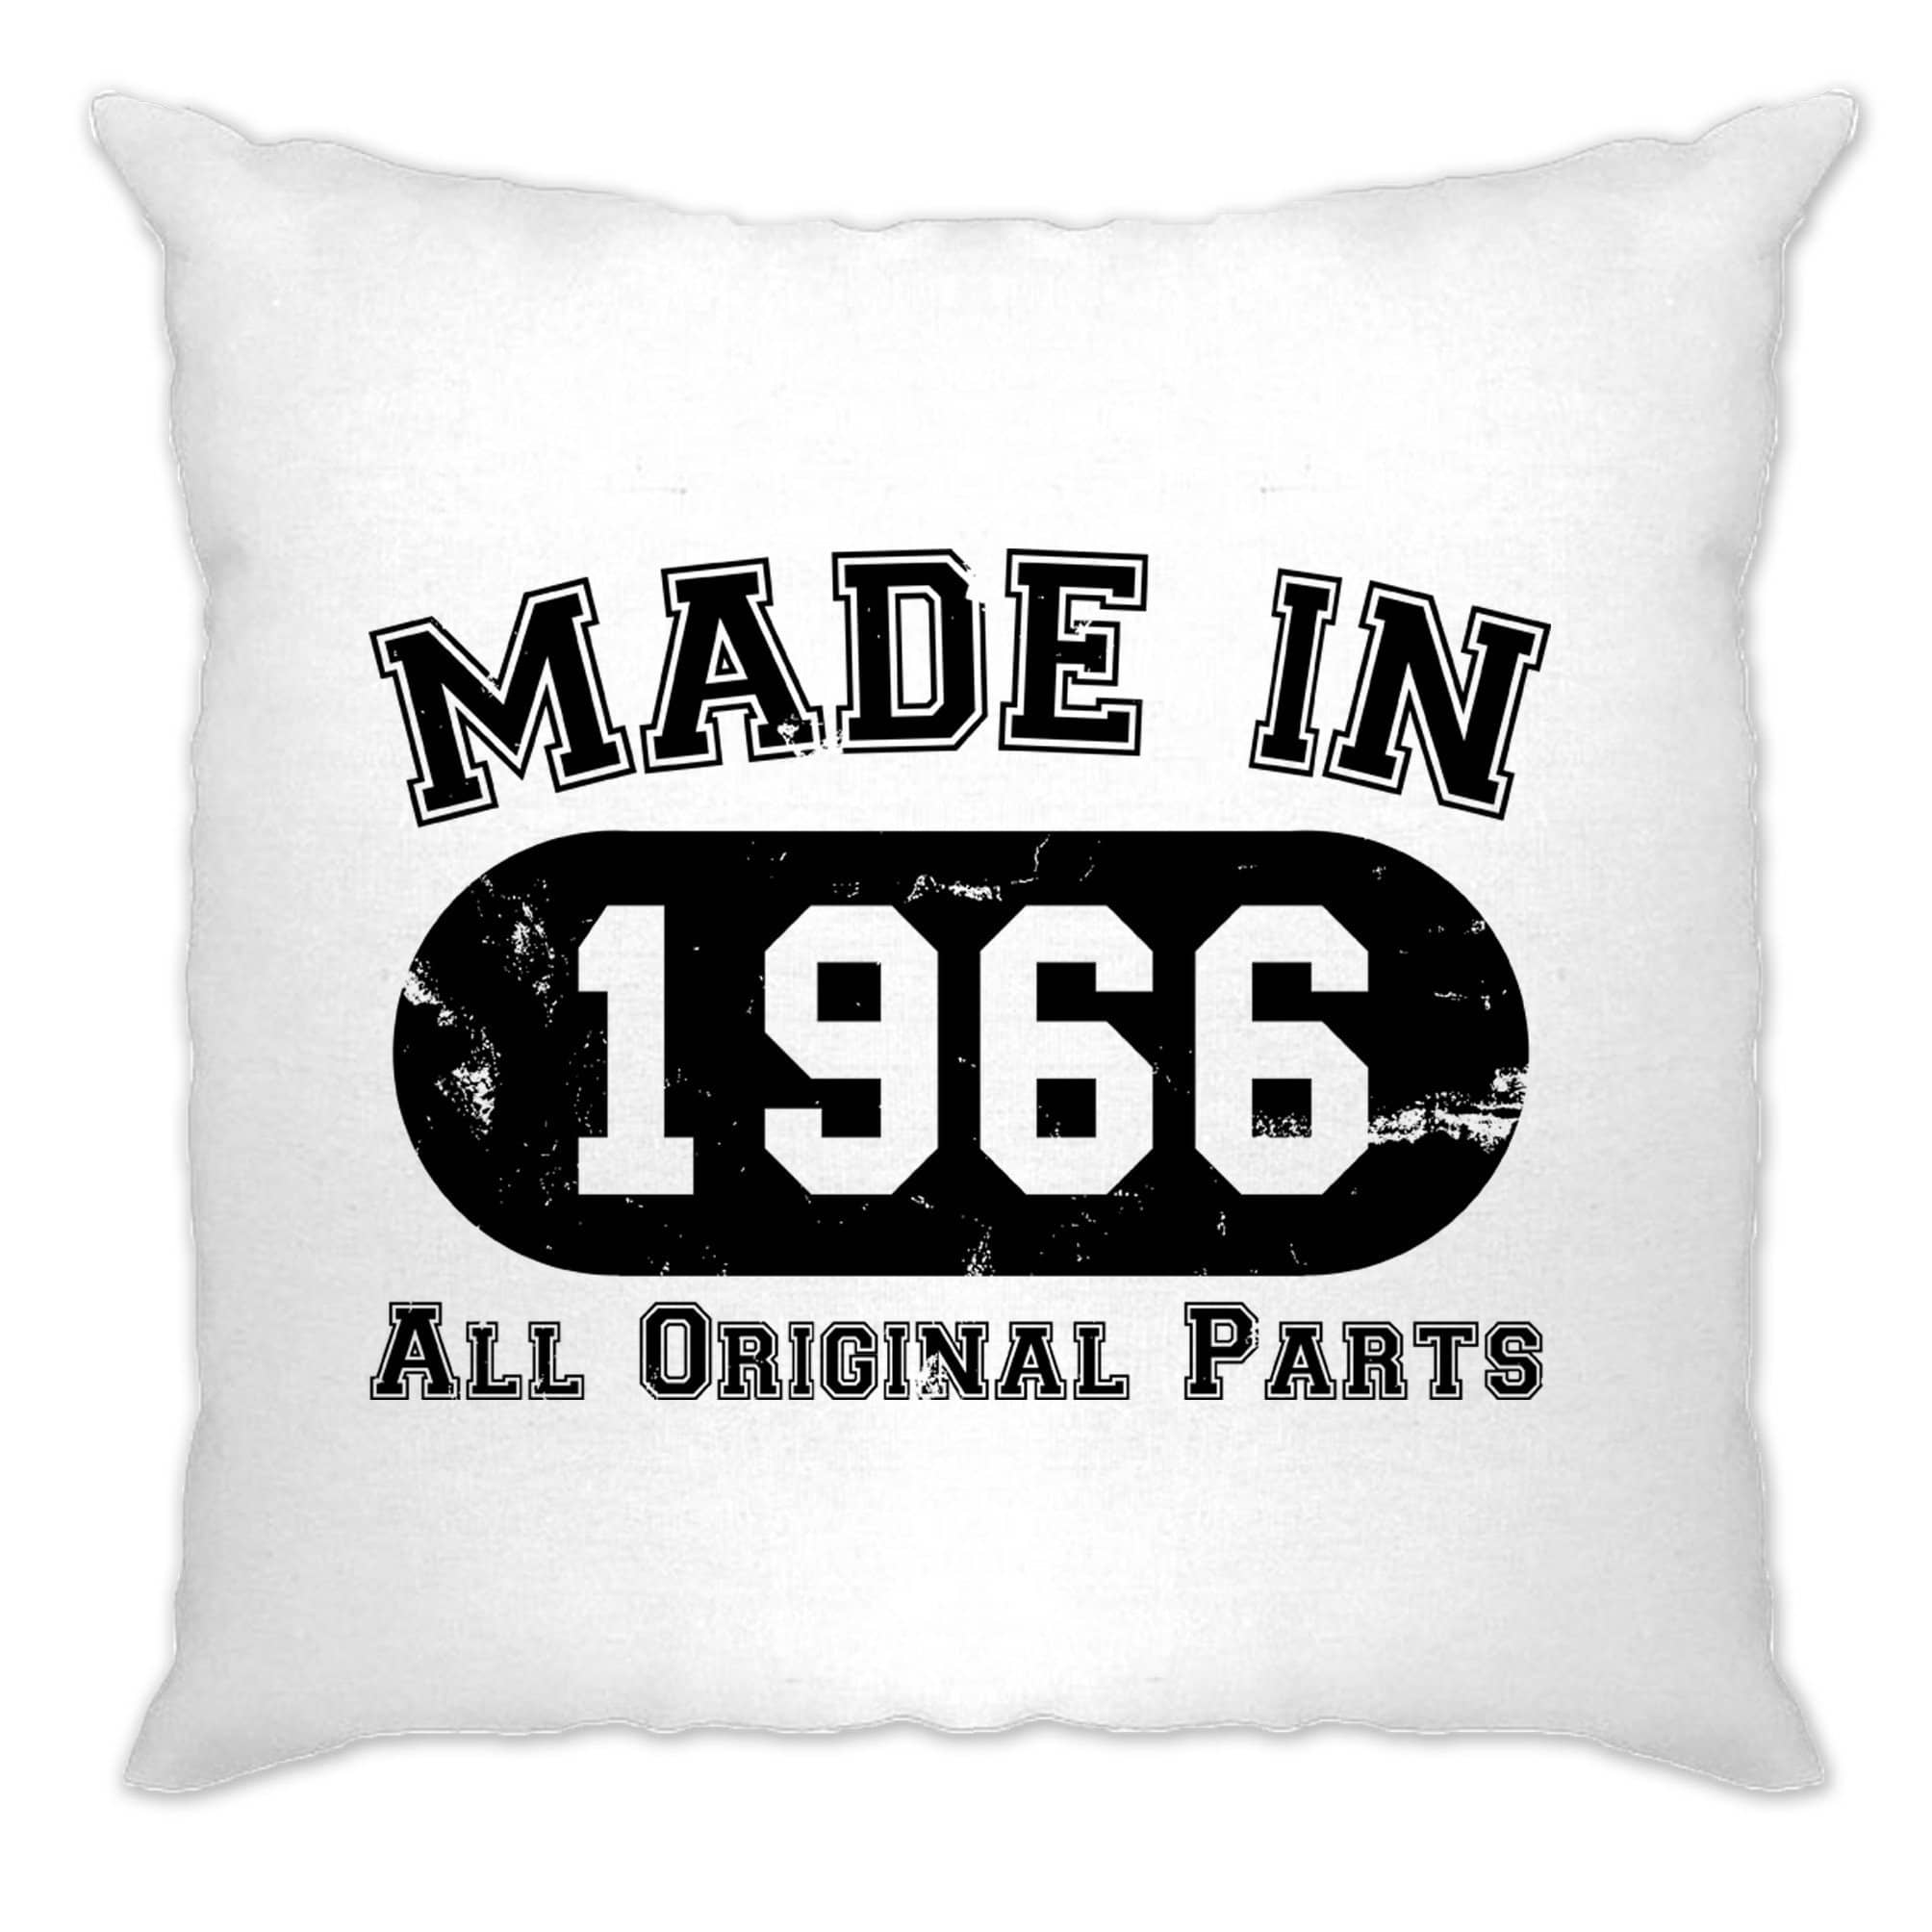 Made in 1966 All Original Parts Cushion Cover [Distressed]